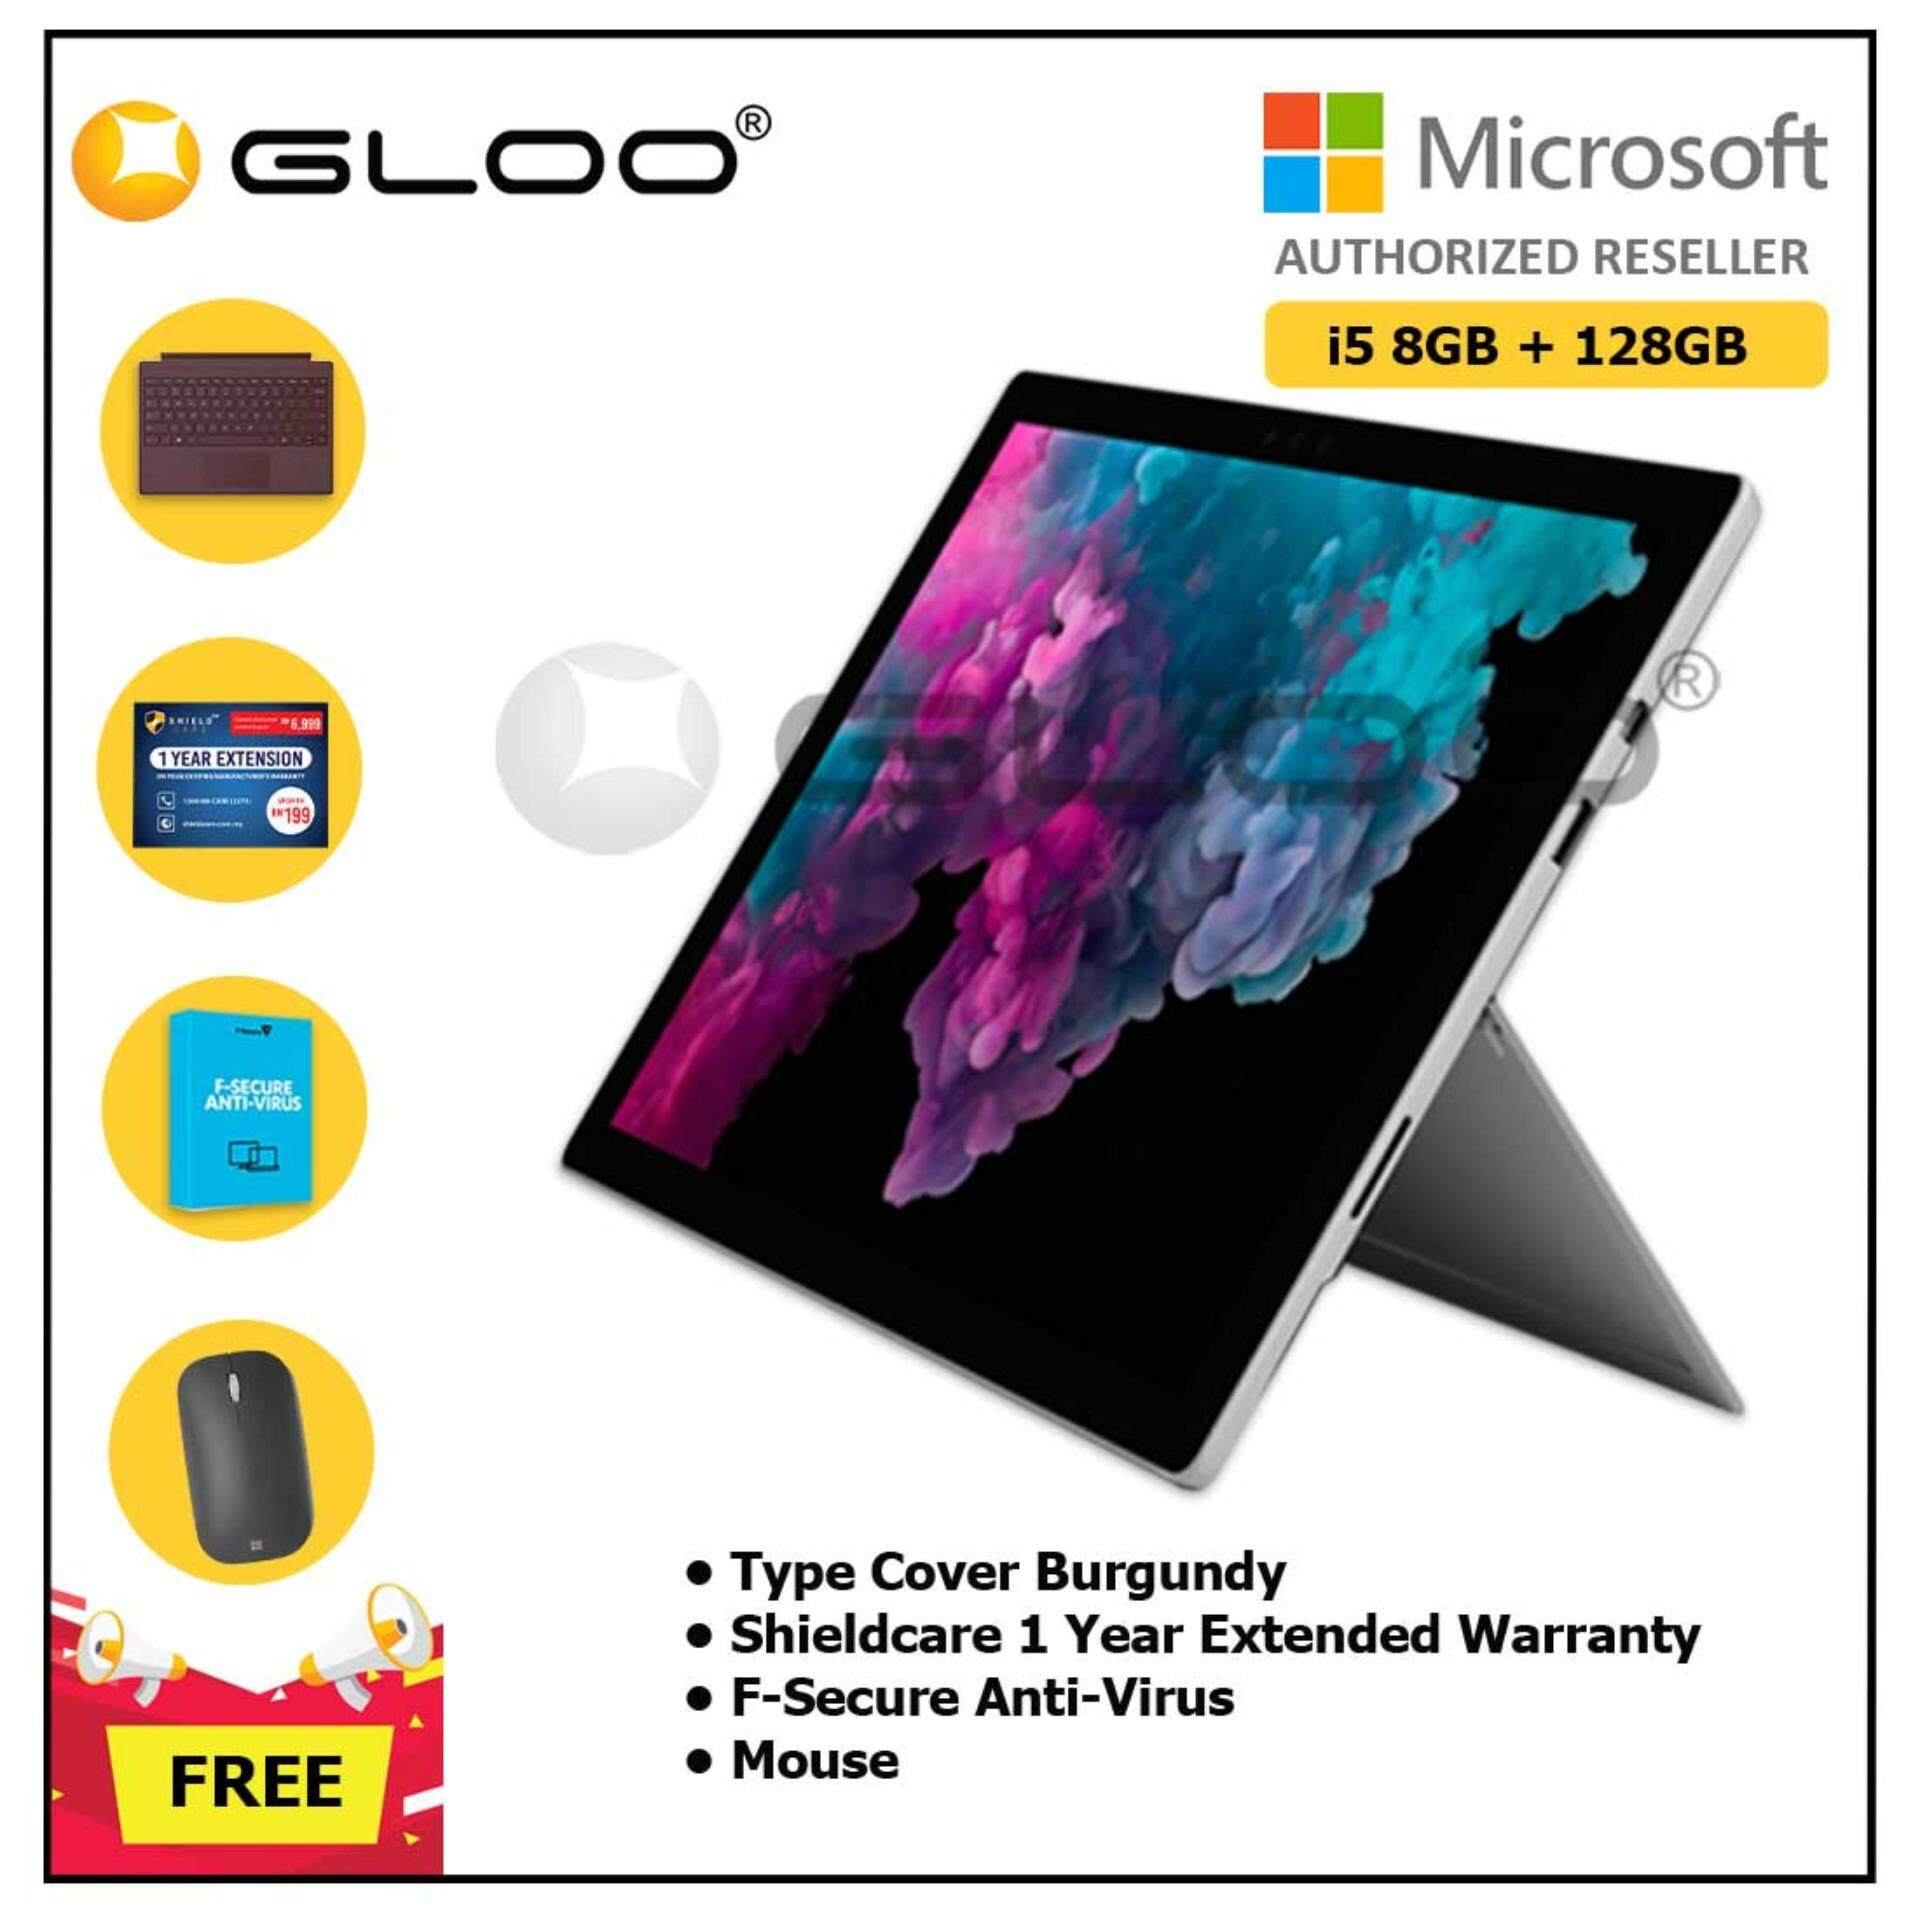 Microsoft Surface Pro 6 Core i5/8GB RAM -128GB + Type Cover Burgundy + Shieldcare 1 Year Extended Warranty + F-Secure EndPoint Protection + Mouse